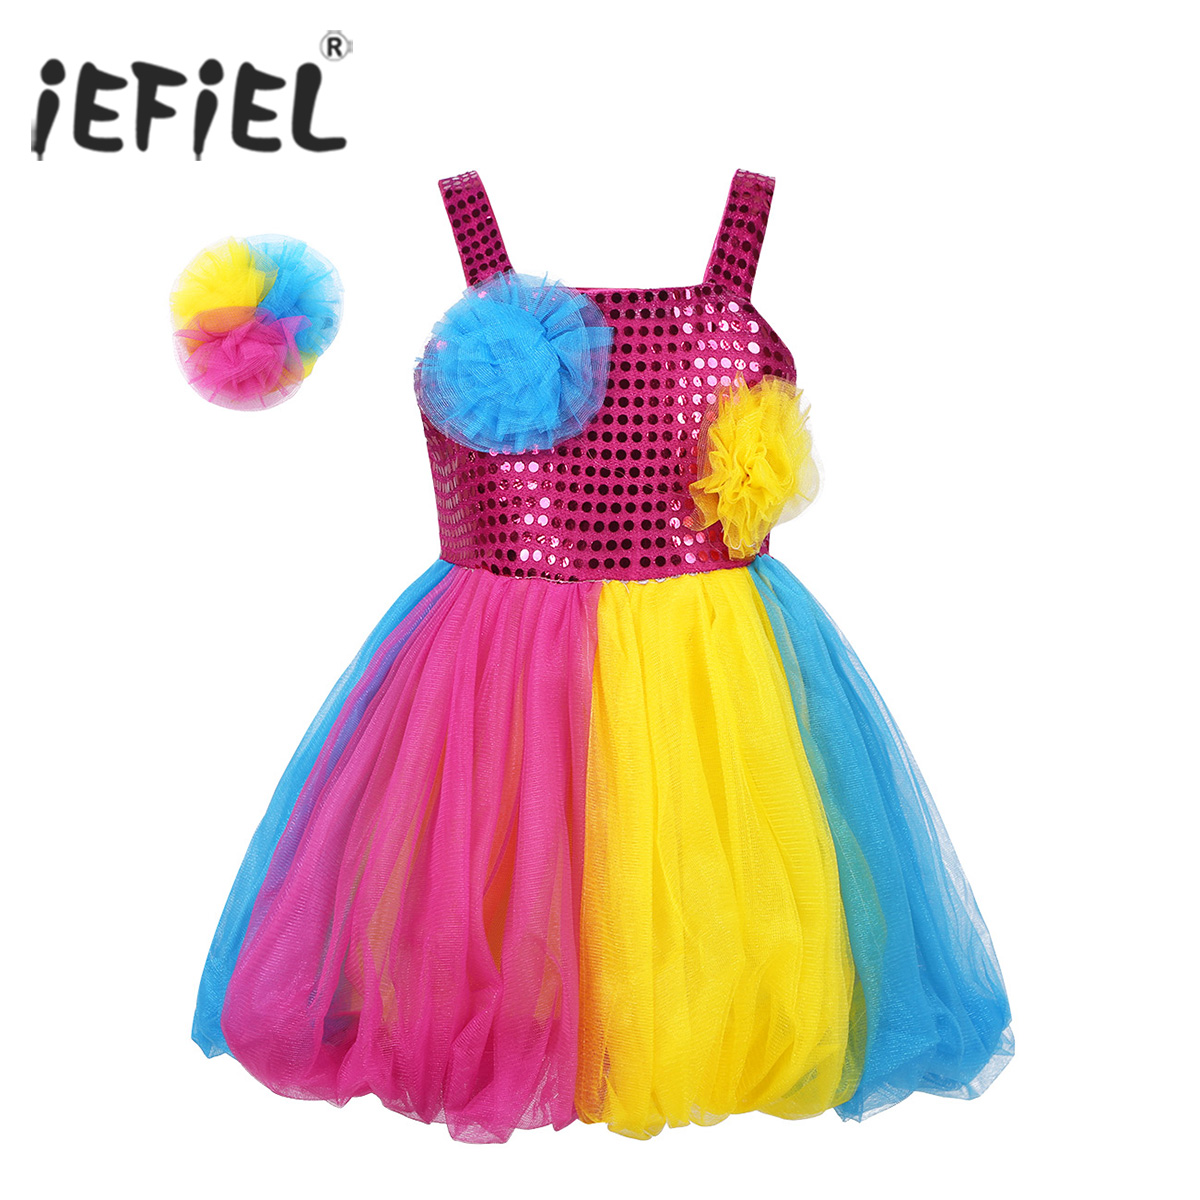 Kids Girls Dancewear Costume Glitter Reflective Mesh Tutu Dance Dress with Hairclip Set for Modern Contemporary Dancewear